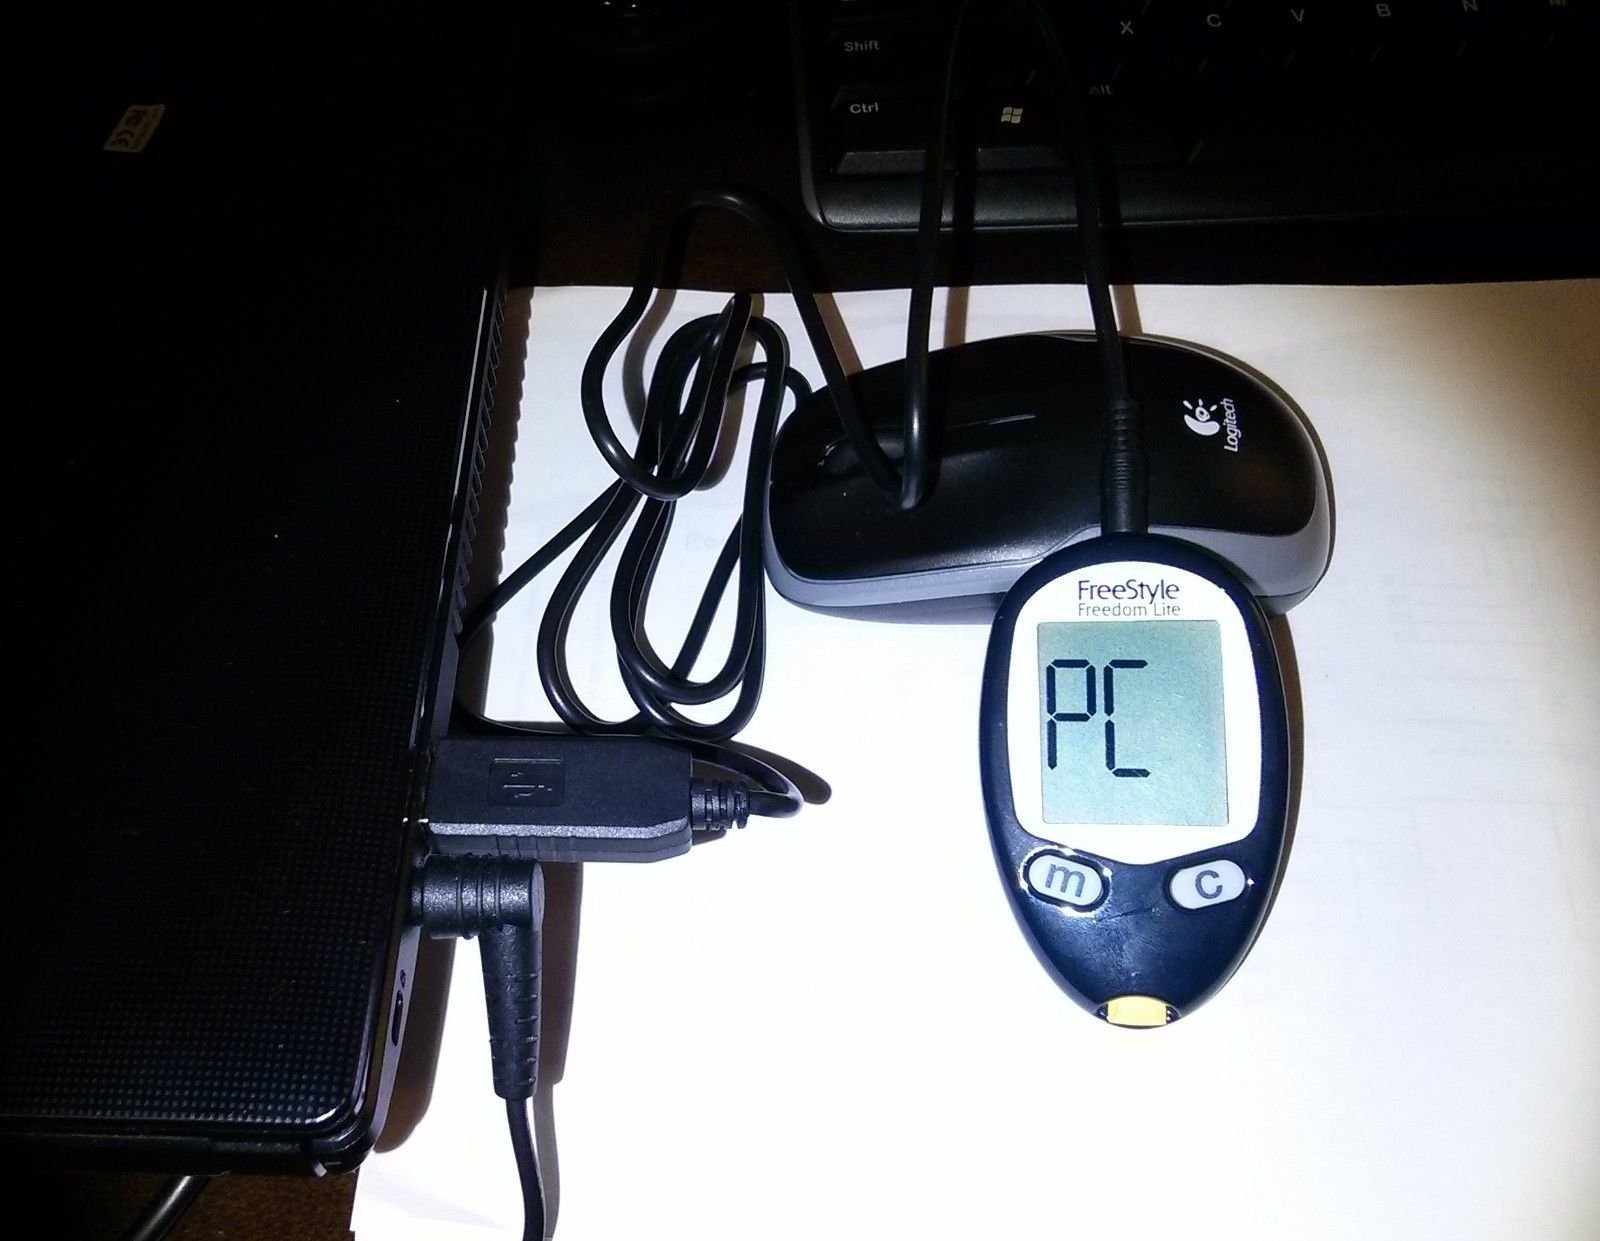 Cheap Diabetes Mellitus Glucose, Find Diabetes Mellitus Glucose - Wiring Diagram For Usb To Stereo Abbott Freestyle Glucose Meter Data Cable